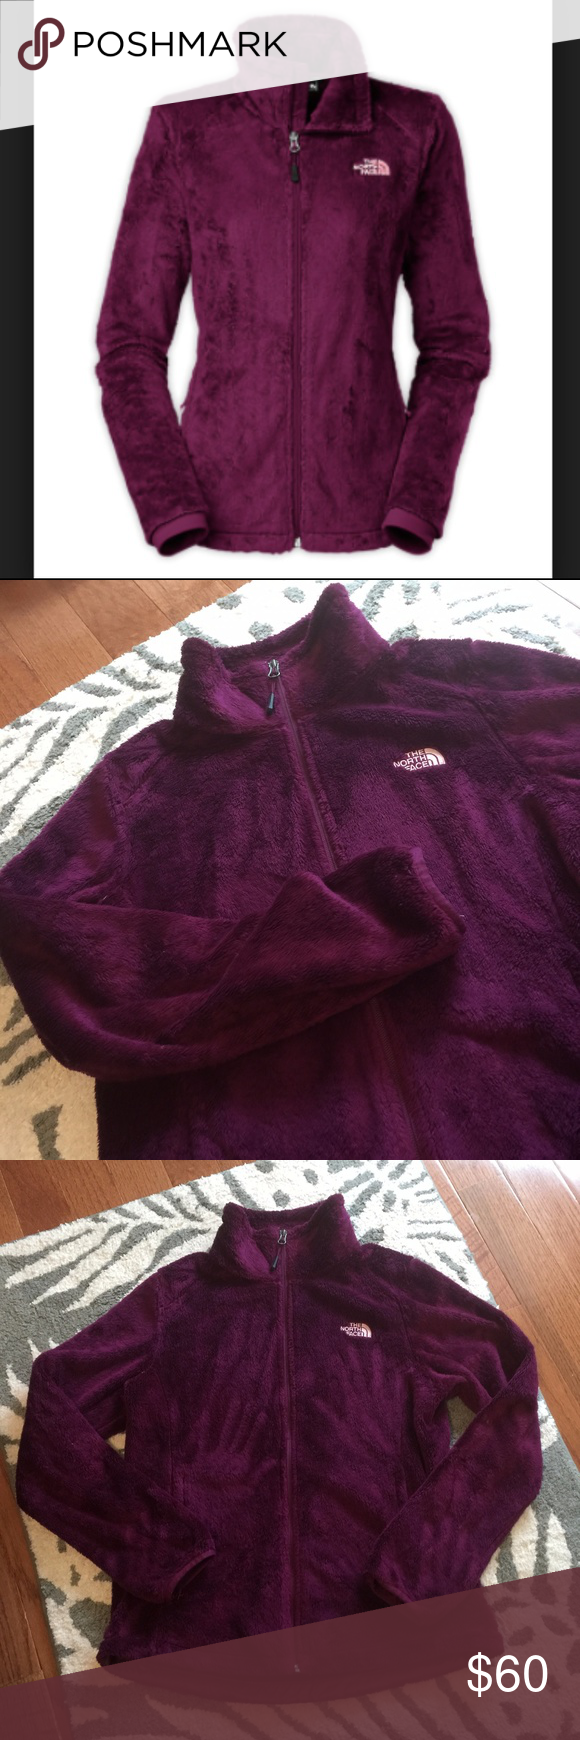 The North Face Osito Jacket In Parlour Purple Clothes Design Fashion Design The North Face [ 1740 x 580 Pixel ]